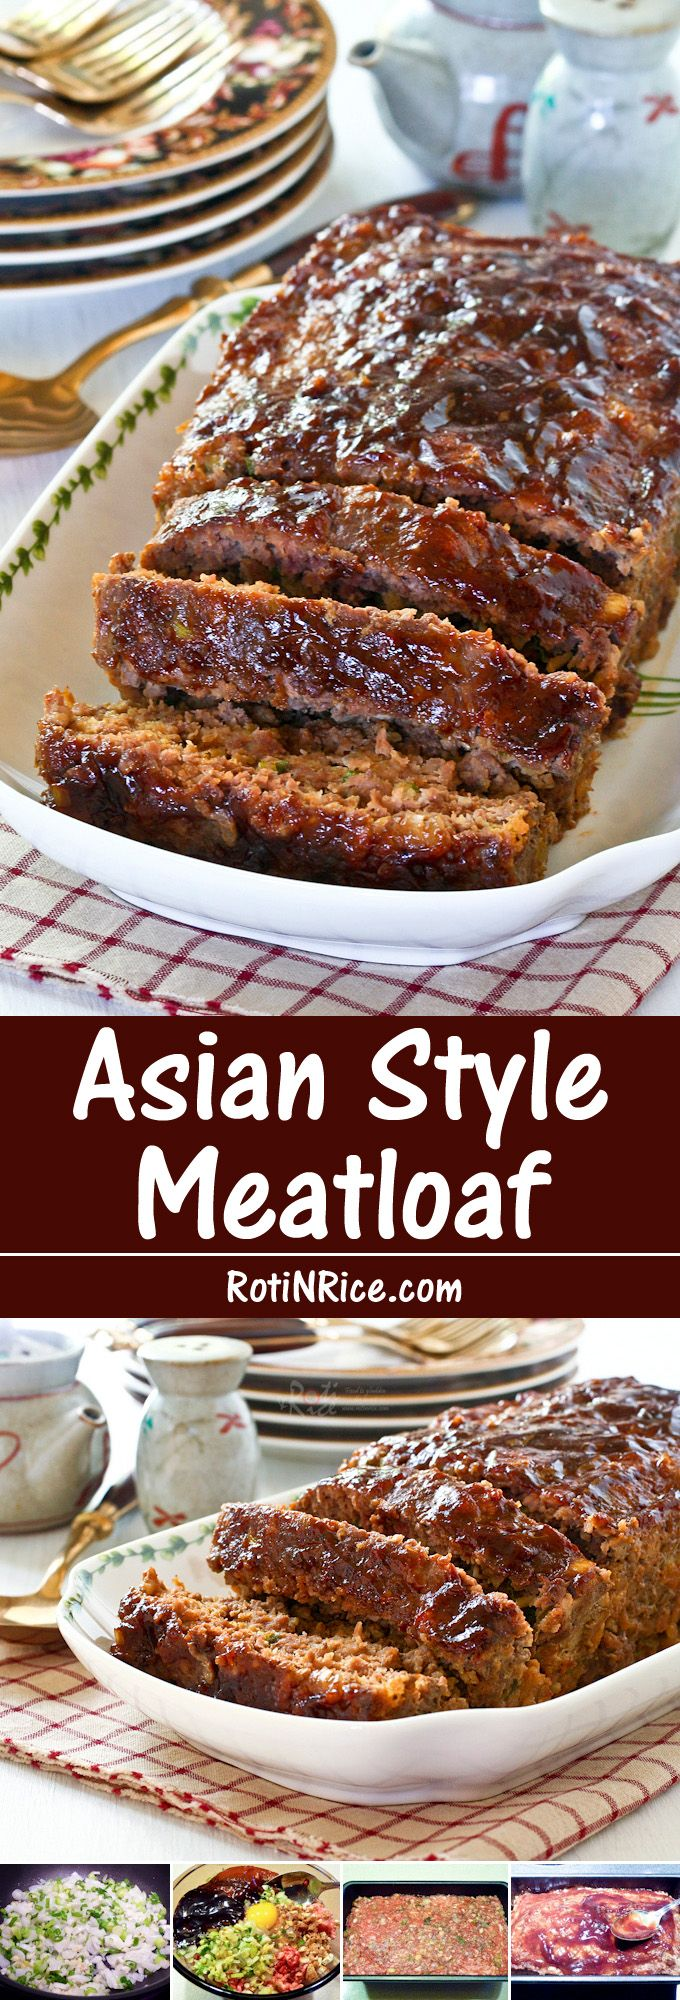 Moist and flavorful Asian Style Meatloaf flavored with hoisin and soy sauce. Delicious served with rice for a truly Asian taste. Freezes nicely. | Food to gladden the heart at RotiNRice.com